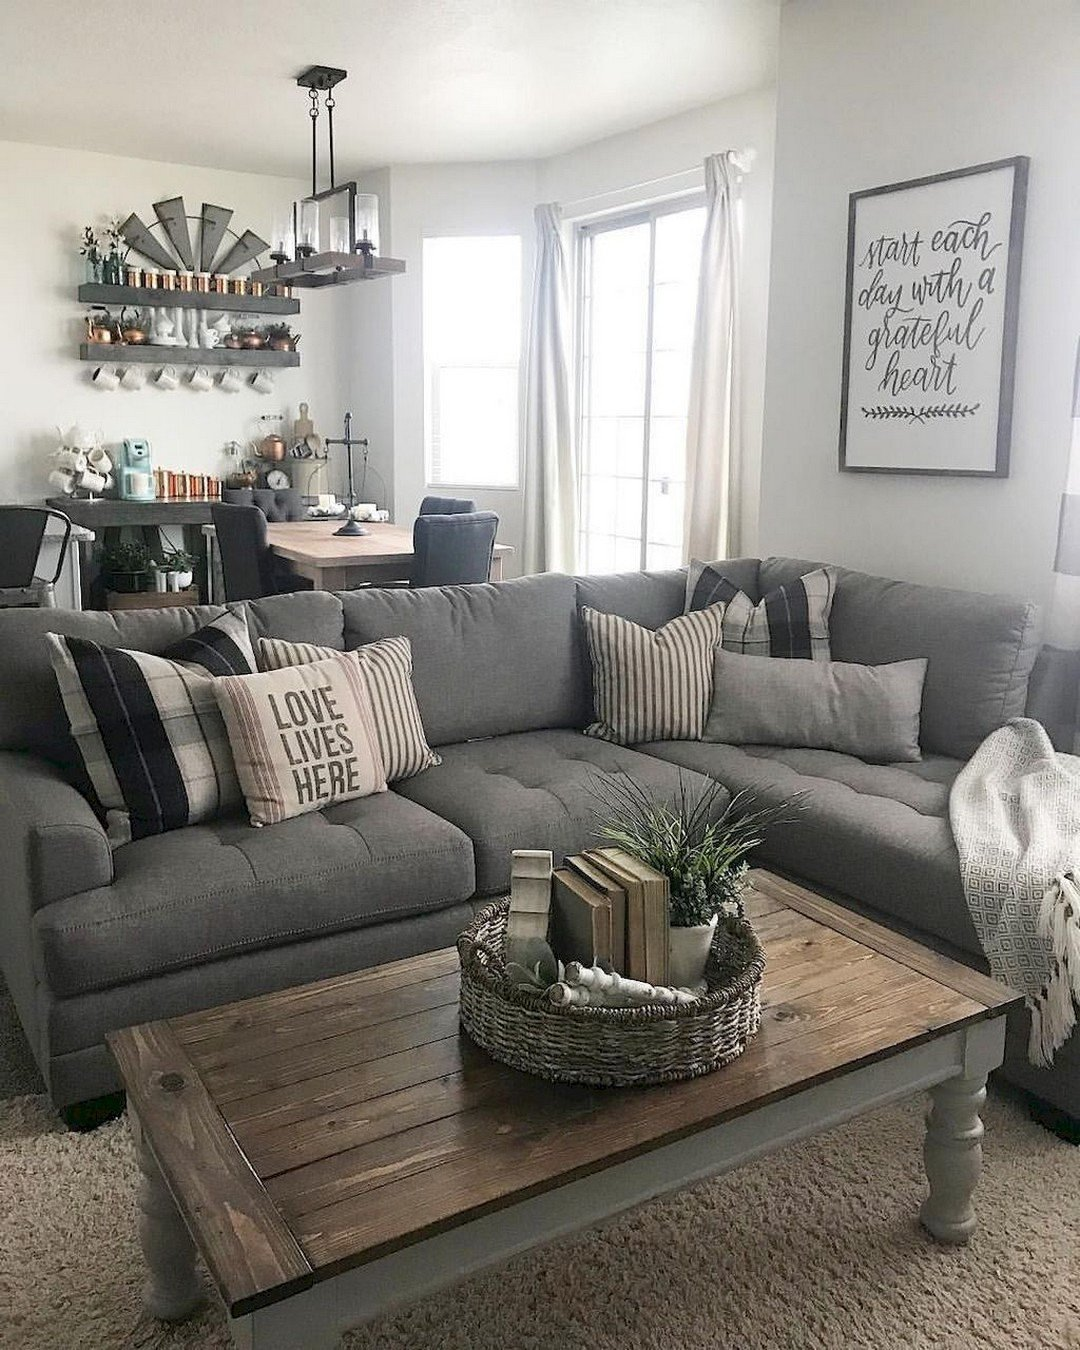 Small Farmhouse Living Room Ideas Fresh some Gorgeous Farmhouse Living Room Decors to Improve In Any House Designs Goodnewsarchitecture